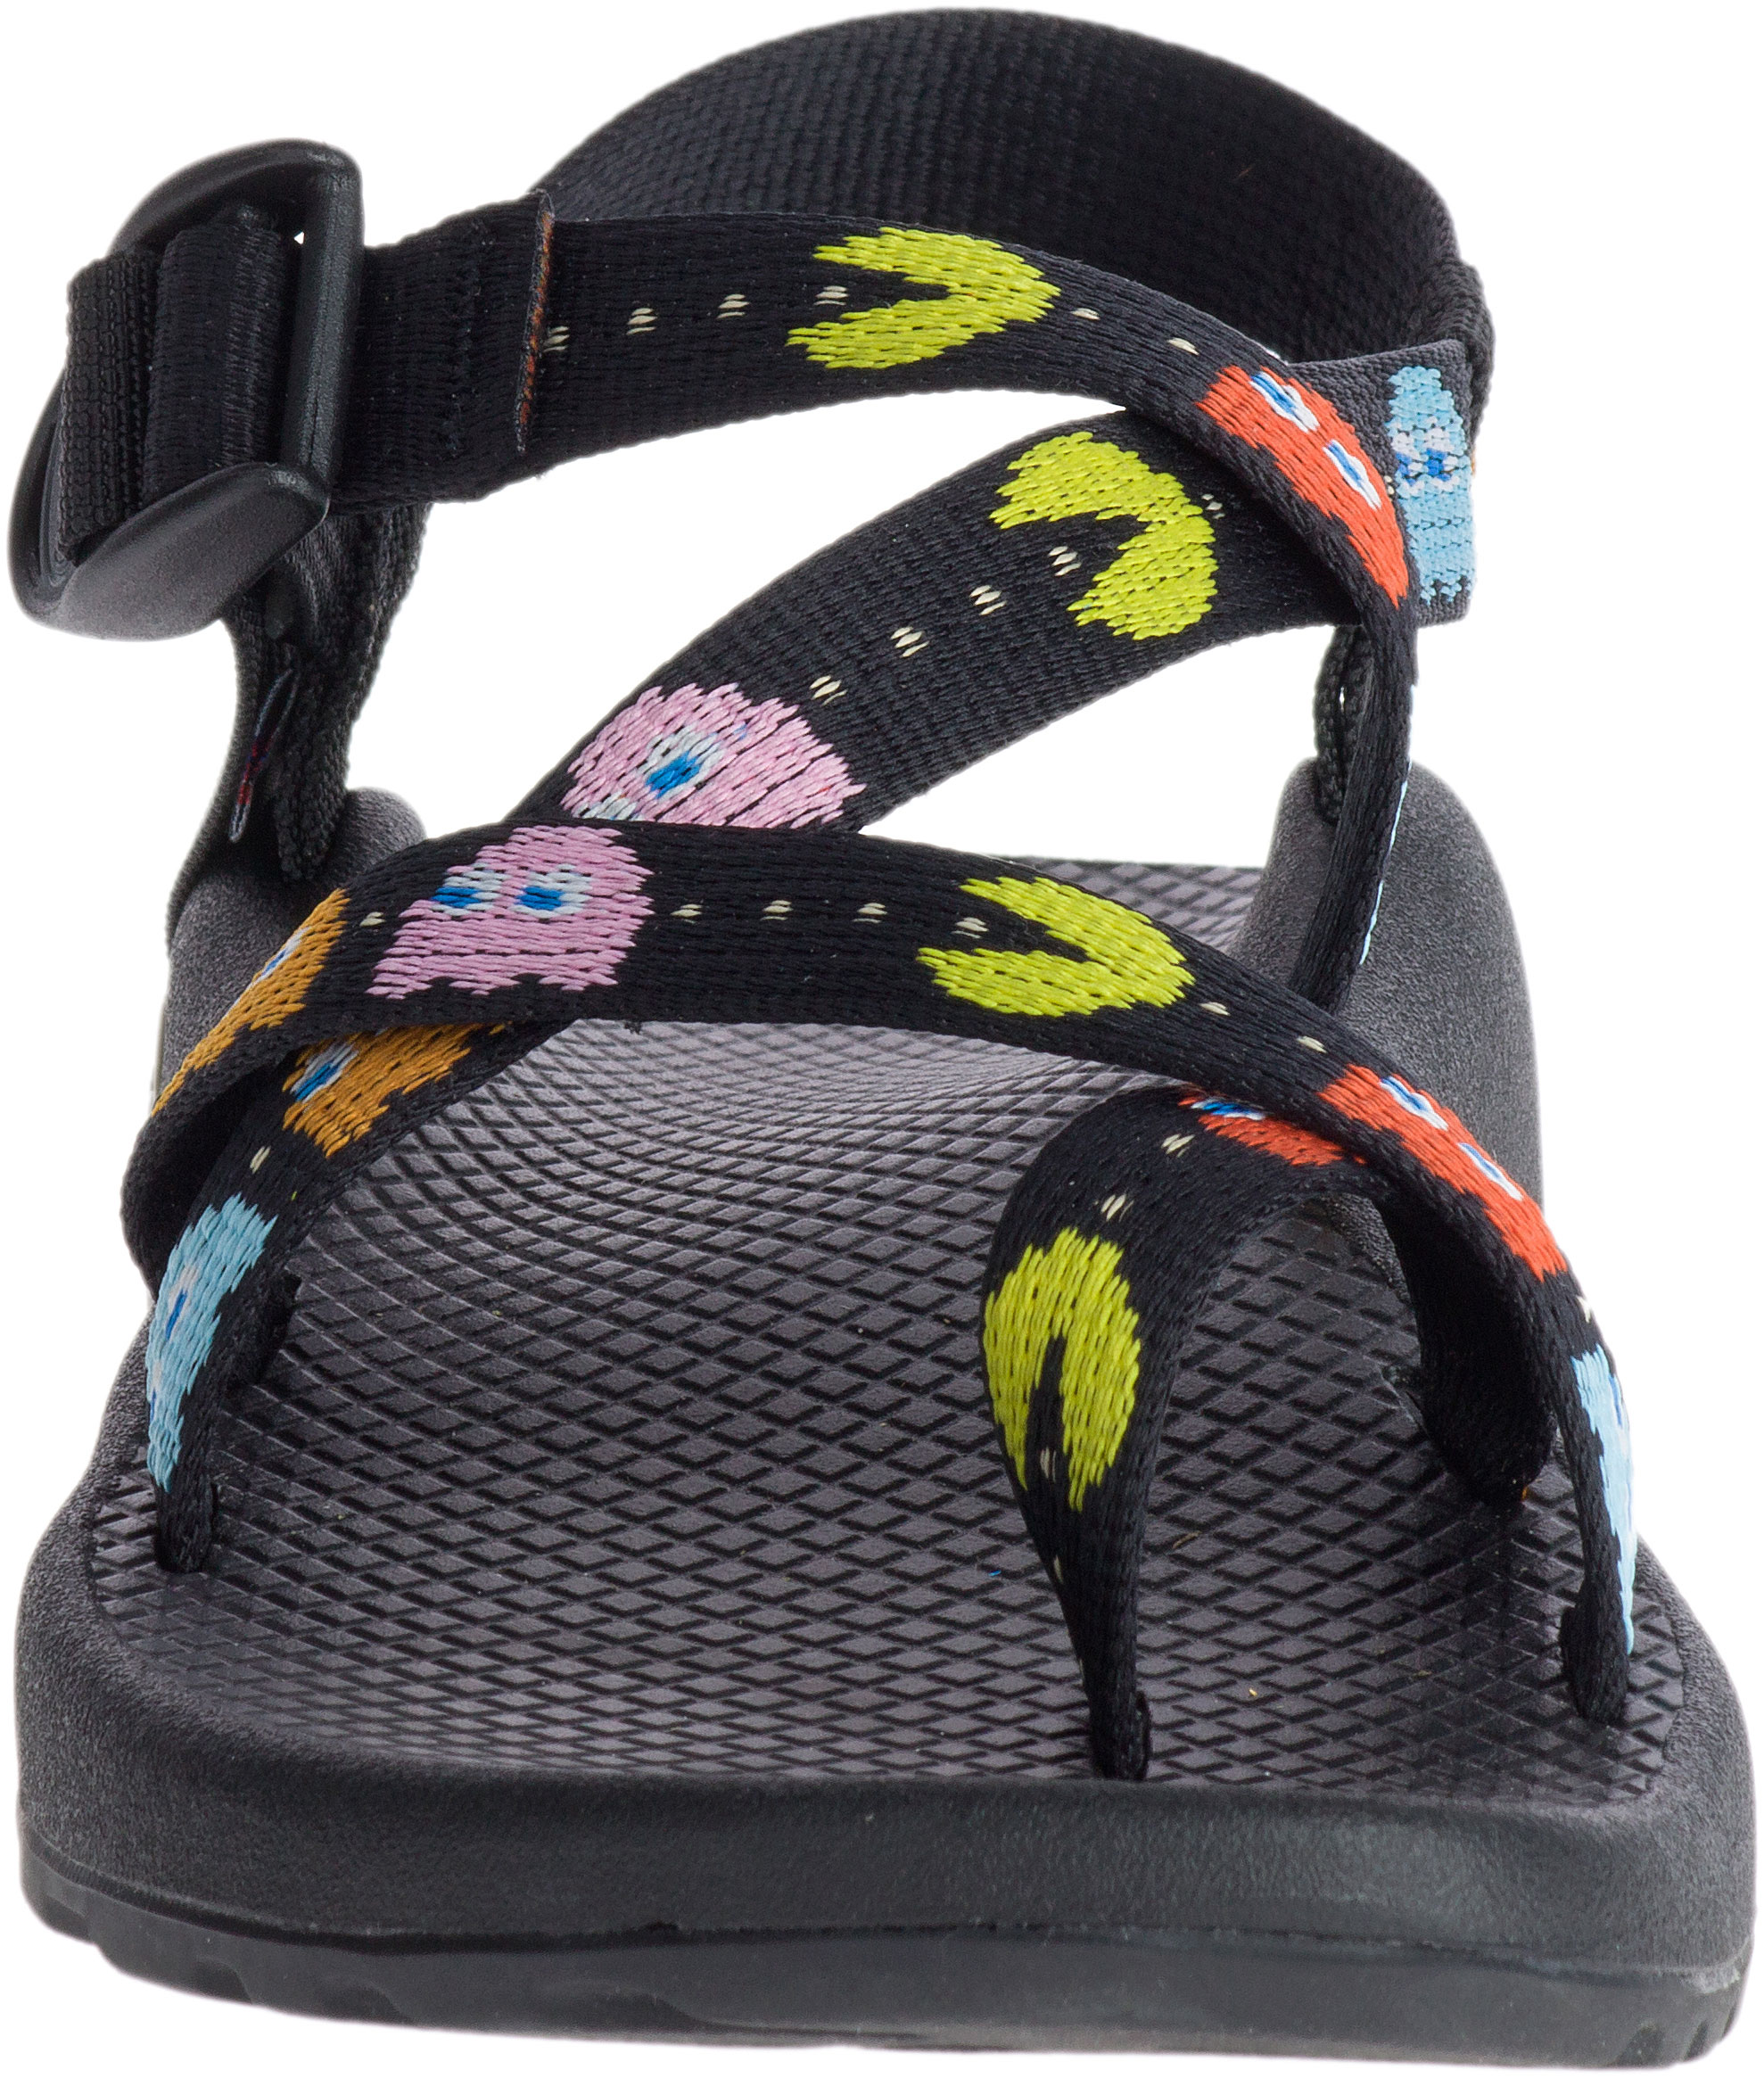 4391e4bb19c54 chacos for sale   OFF73% Discounts